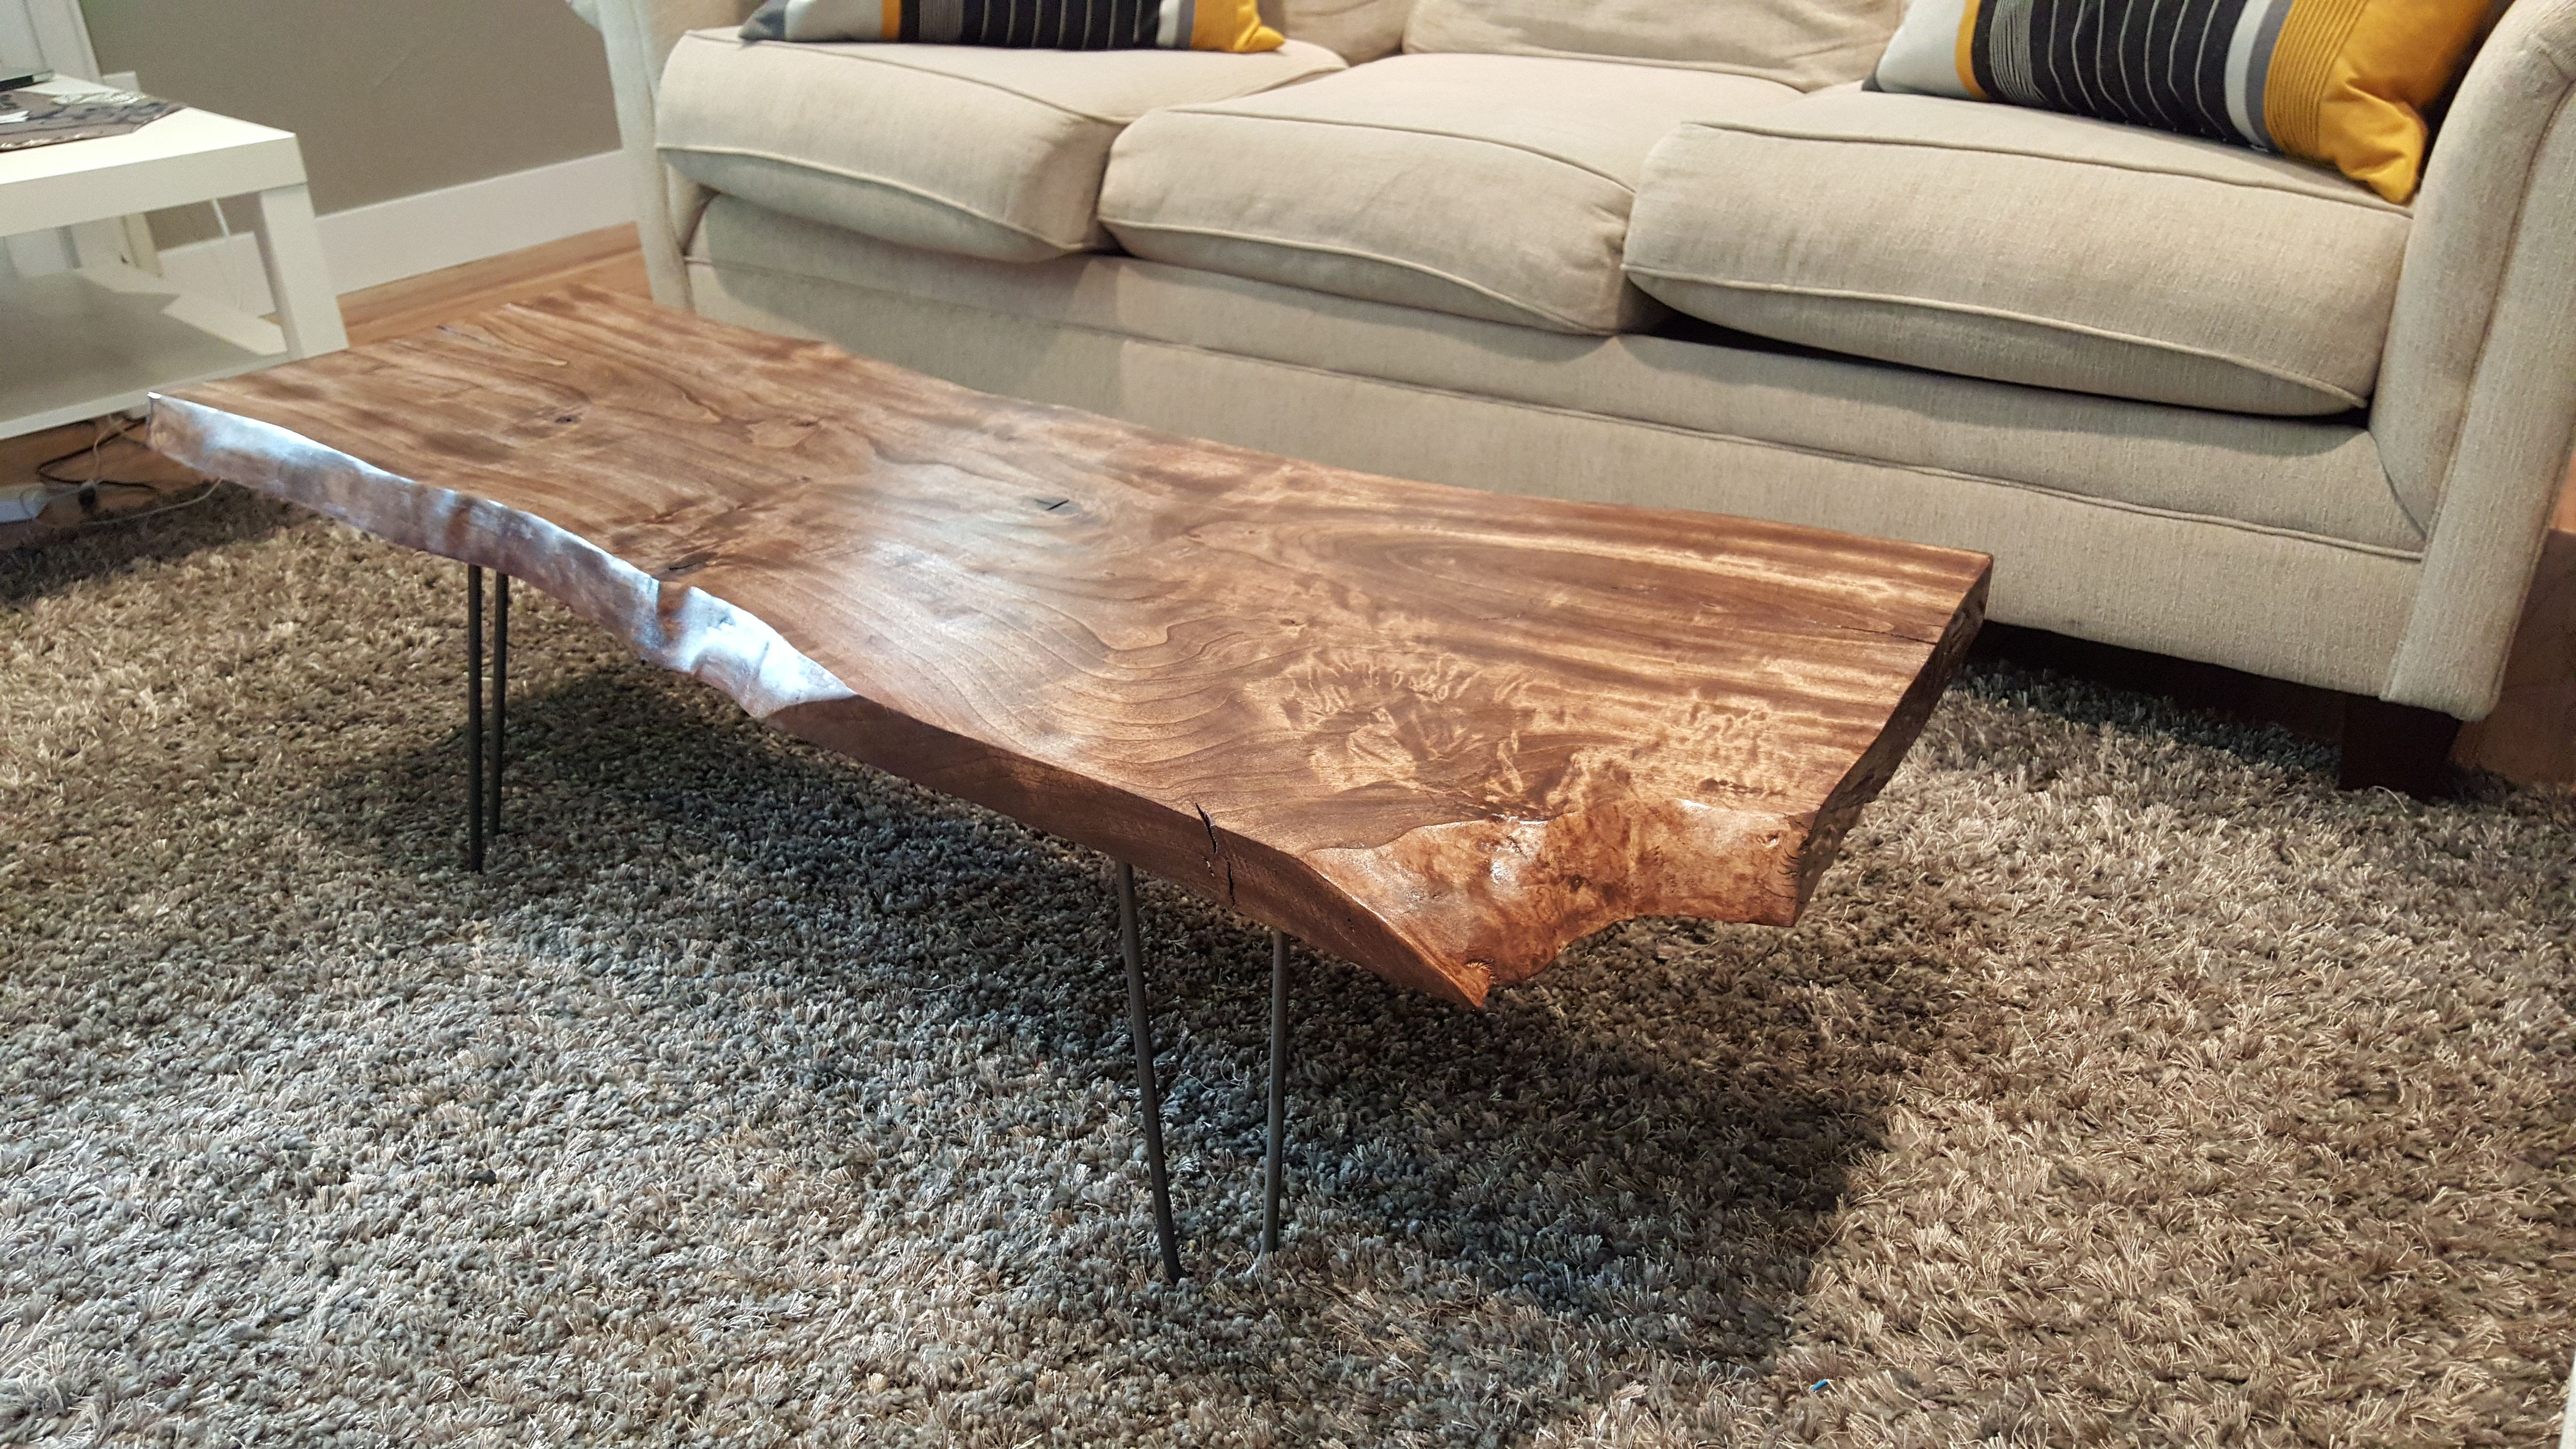 Diy Live Edge Wood Coffee Table Diy And Haus Decorations Rustic with proportions 5312 X 2988